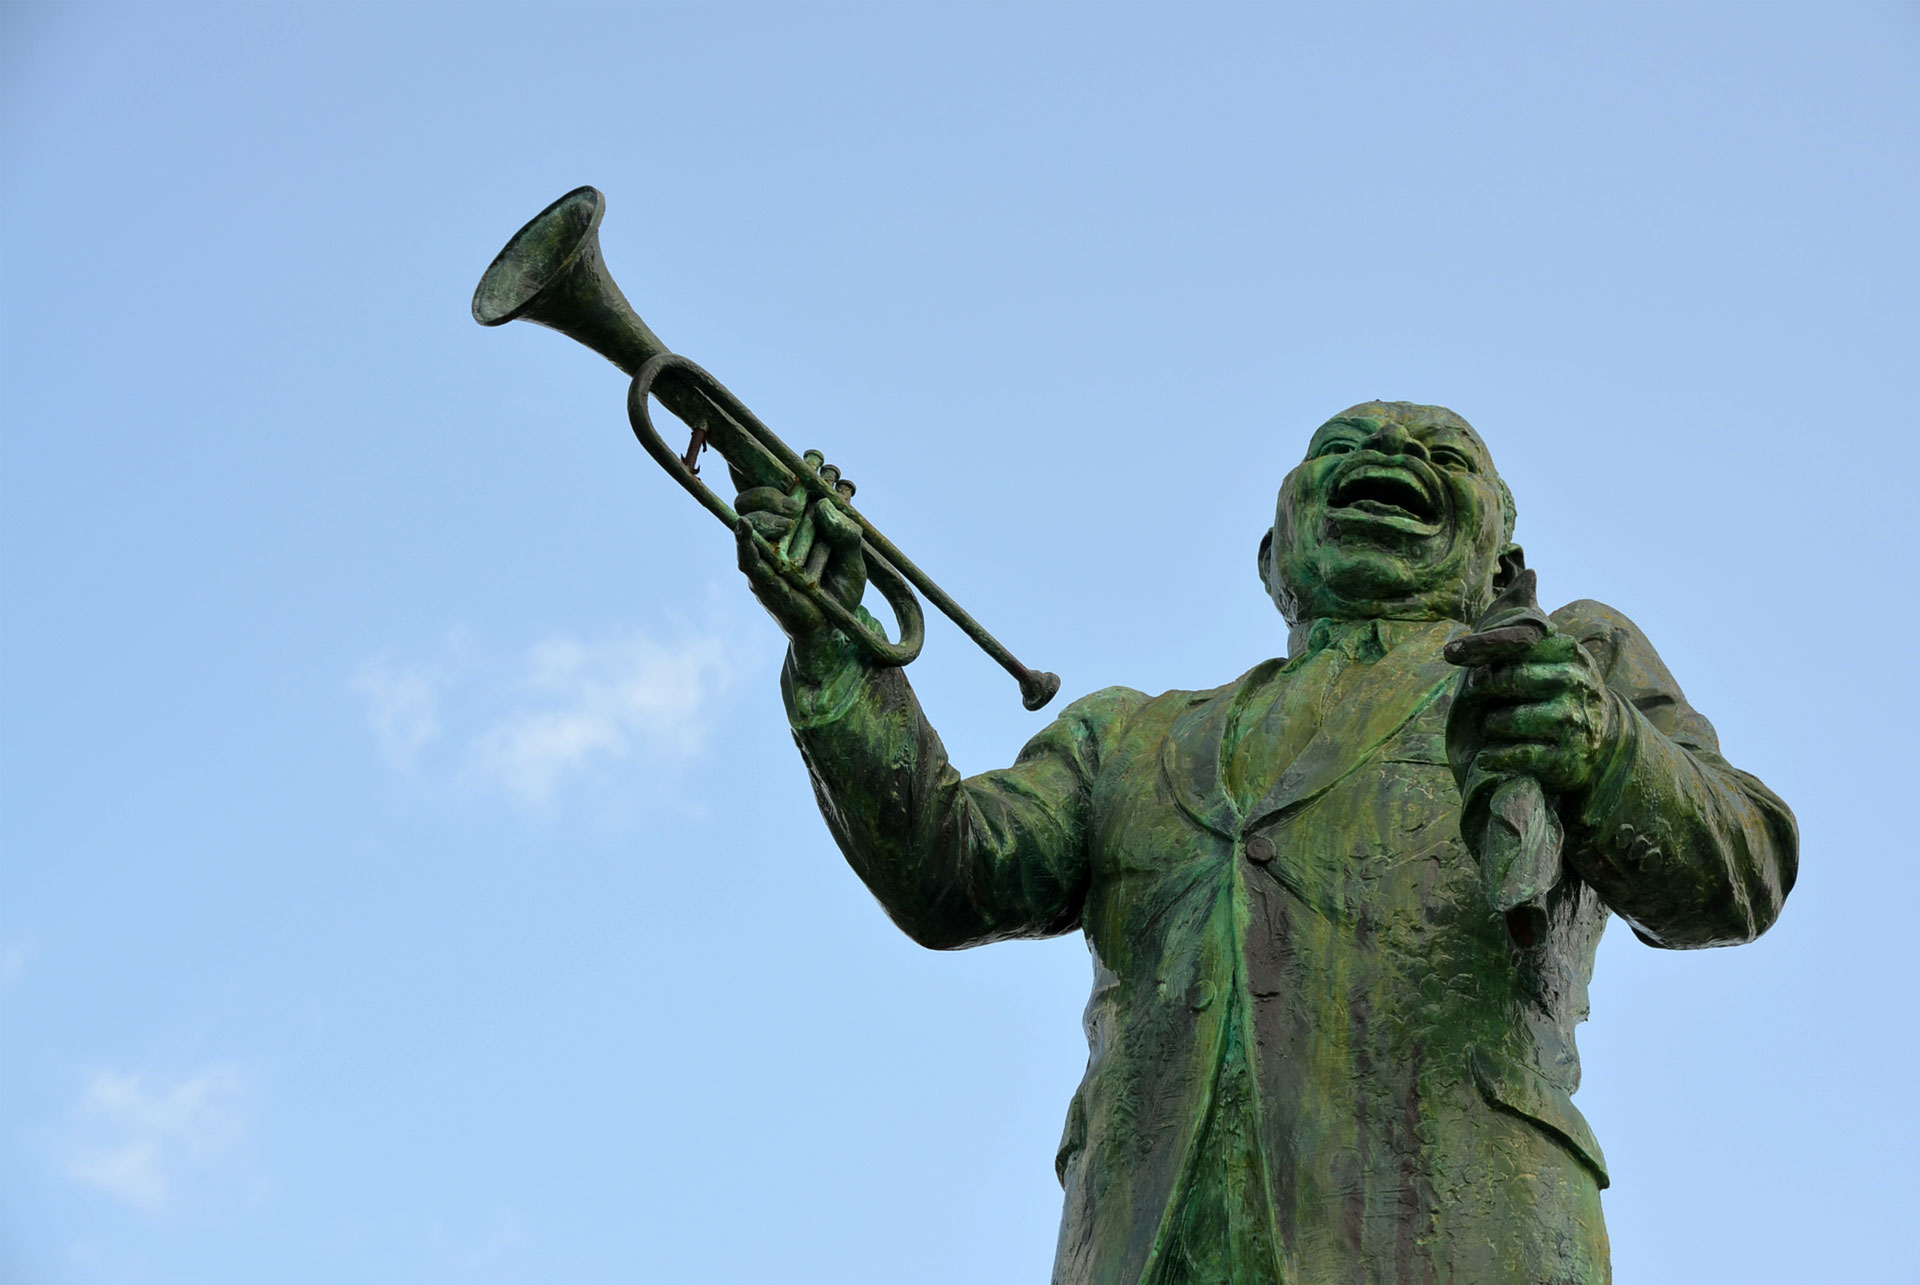 Louis Armstrong sculpture